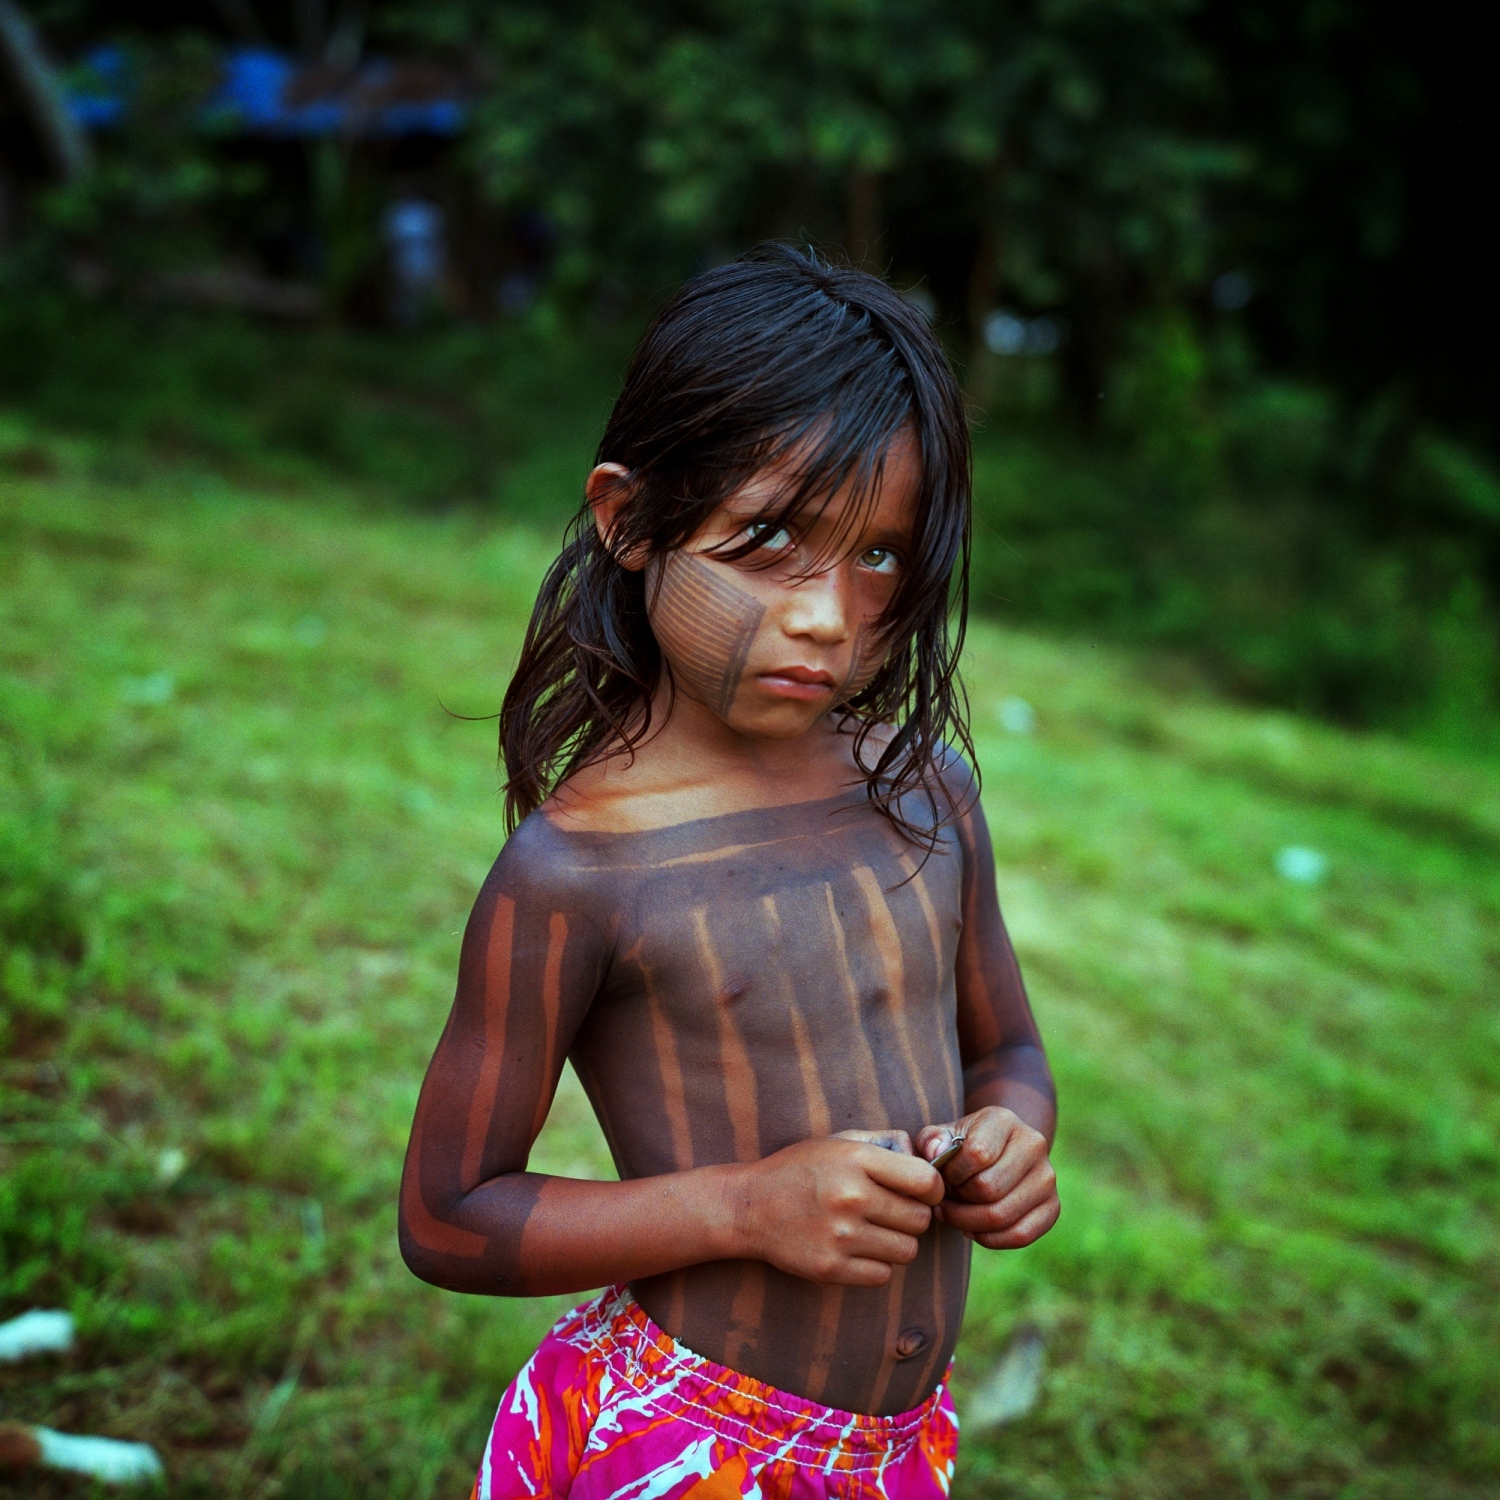 "2014. A child from the Xikrin village of ""Pot crô"" stands for a photo on the banks of the Rio Bacaja, the rivers name meaning ""the water that runs in river is the same as the blood that flows through our veins."" The Xikrin are a warrior tribe that have strongly resisted the Belo Monte Dam. Their villages were divided and leadership weakened after Norte Enegria, the company building the dam, enacted the Emergency Plan. The Emergency Plan gave each indigenous village 30,000 Brazilian Reais or 10,000 American Dollars per month from 2011-2013, driving them to split up for more money. Many of the chiefs supported the plan buying boats, motors, and televisions, while others tried to maintain a resistance to the Dam. The program was devastating to the regions indigenous tribes, impacting their health and culture. Communities stopped farming their land and began depending on modern food, paid for with free money, and people who had always lived a subsistence lifestyle fell into dependance on those from the outside."